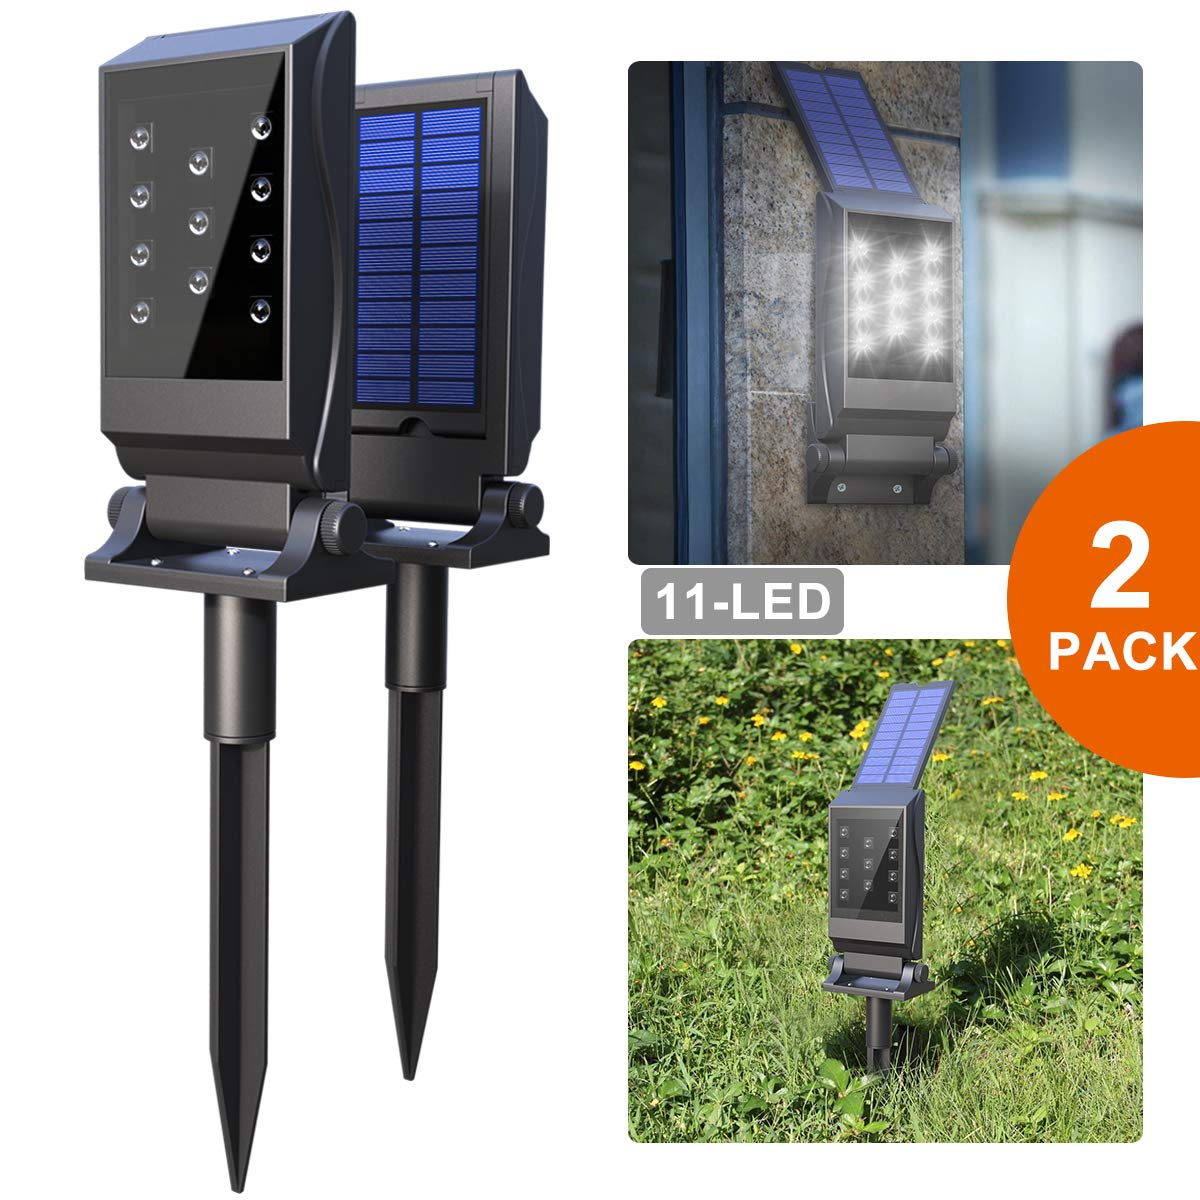 Avaspot Solar Spotlights,【2018 NEW VERSION】2 PACK 11 LED Solar Lights, Waterproof Solar Landscape Lights, 180°Adjustable Outdoor Security Lighting 2-in-1 Solar Wall Light for Patio Yard Driveway, 2PCS by Avaspot